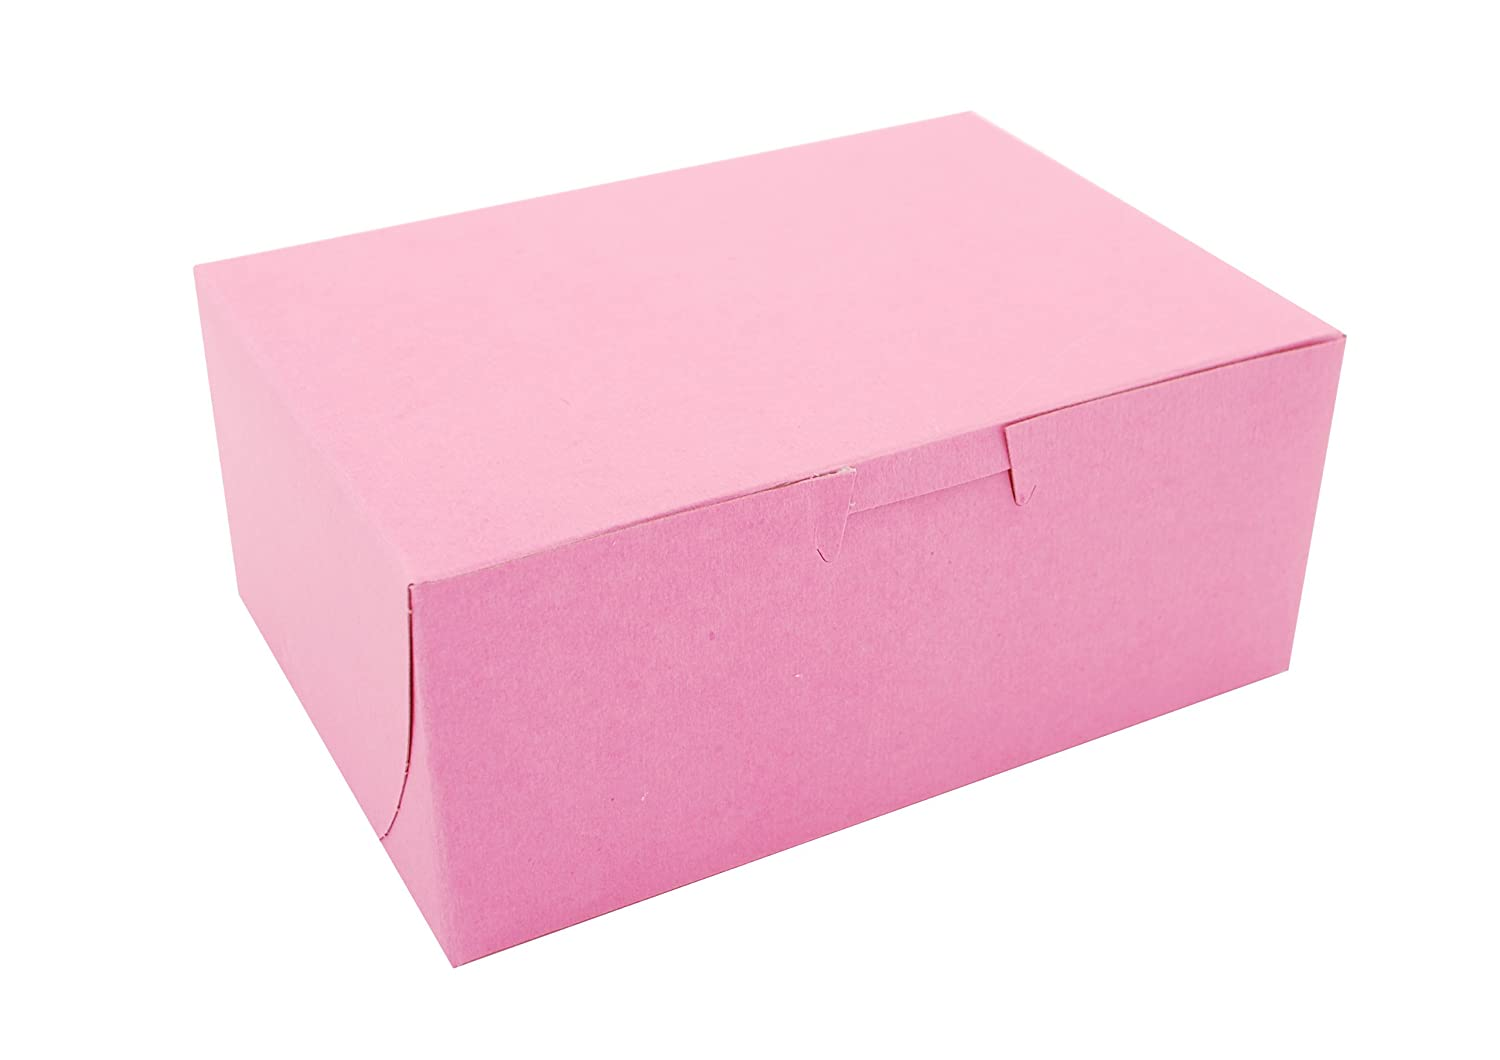 Southern Champion pink bakery boxes